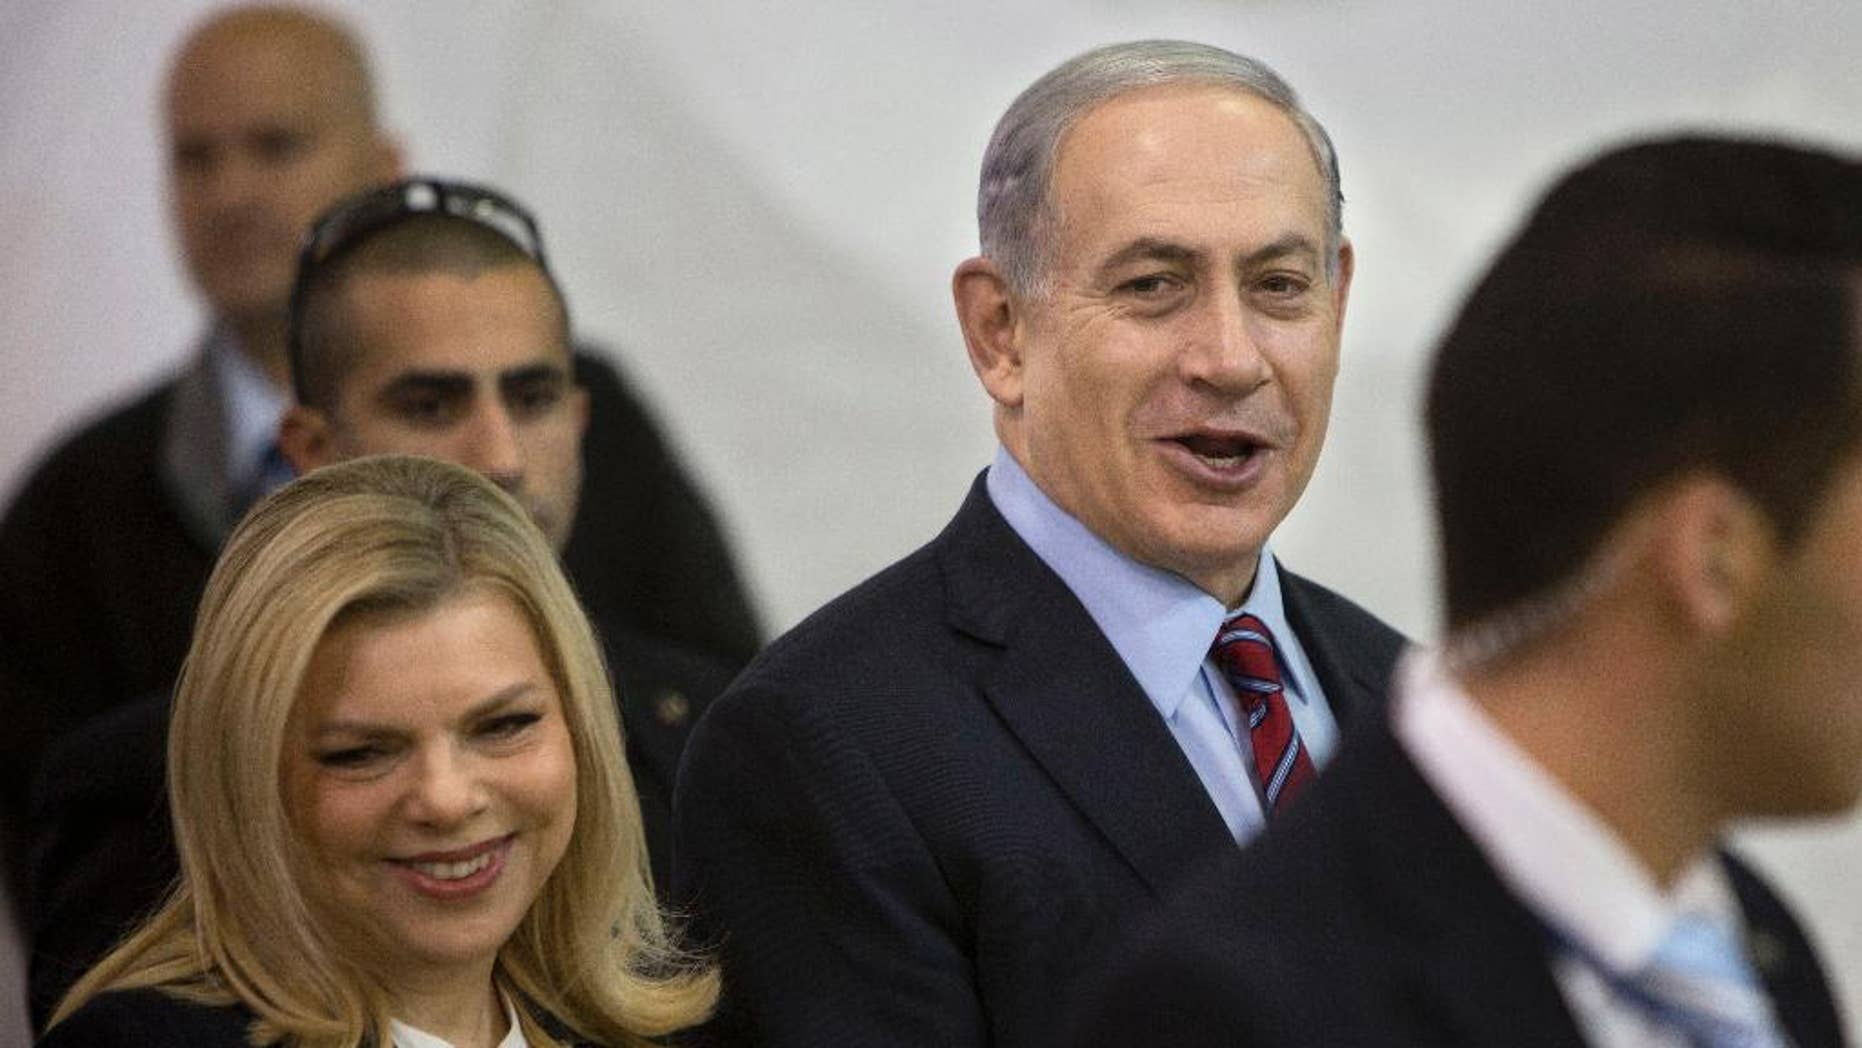 FILE - In this Wednesday, Dec. 31, 2014 file photo, Israeli Prime Minister Benjamin Netanyahu and his wife Sarah arrive for the Likud party primary elections in Jerusalem. Already under fire in Israel and abroad, Prime Minister Benjamin Netanyahu is now dealing with headaches on the home front as well following a series of scandals involving his wife. (AP Photo/Oded Balilty, File)